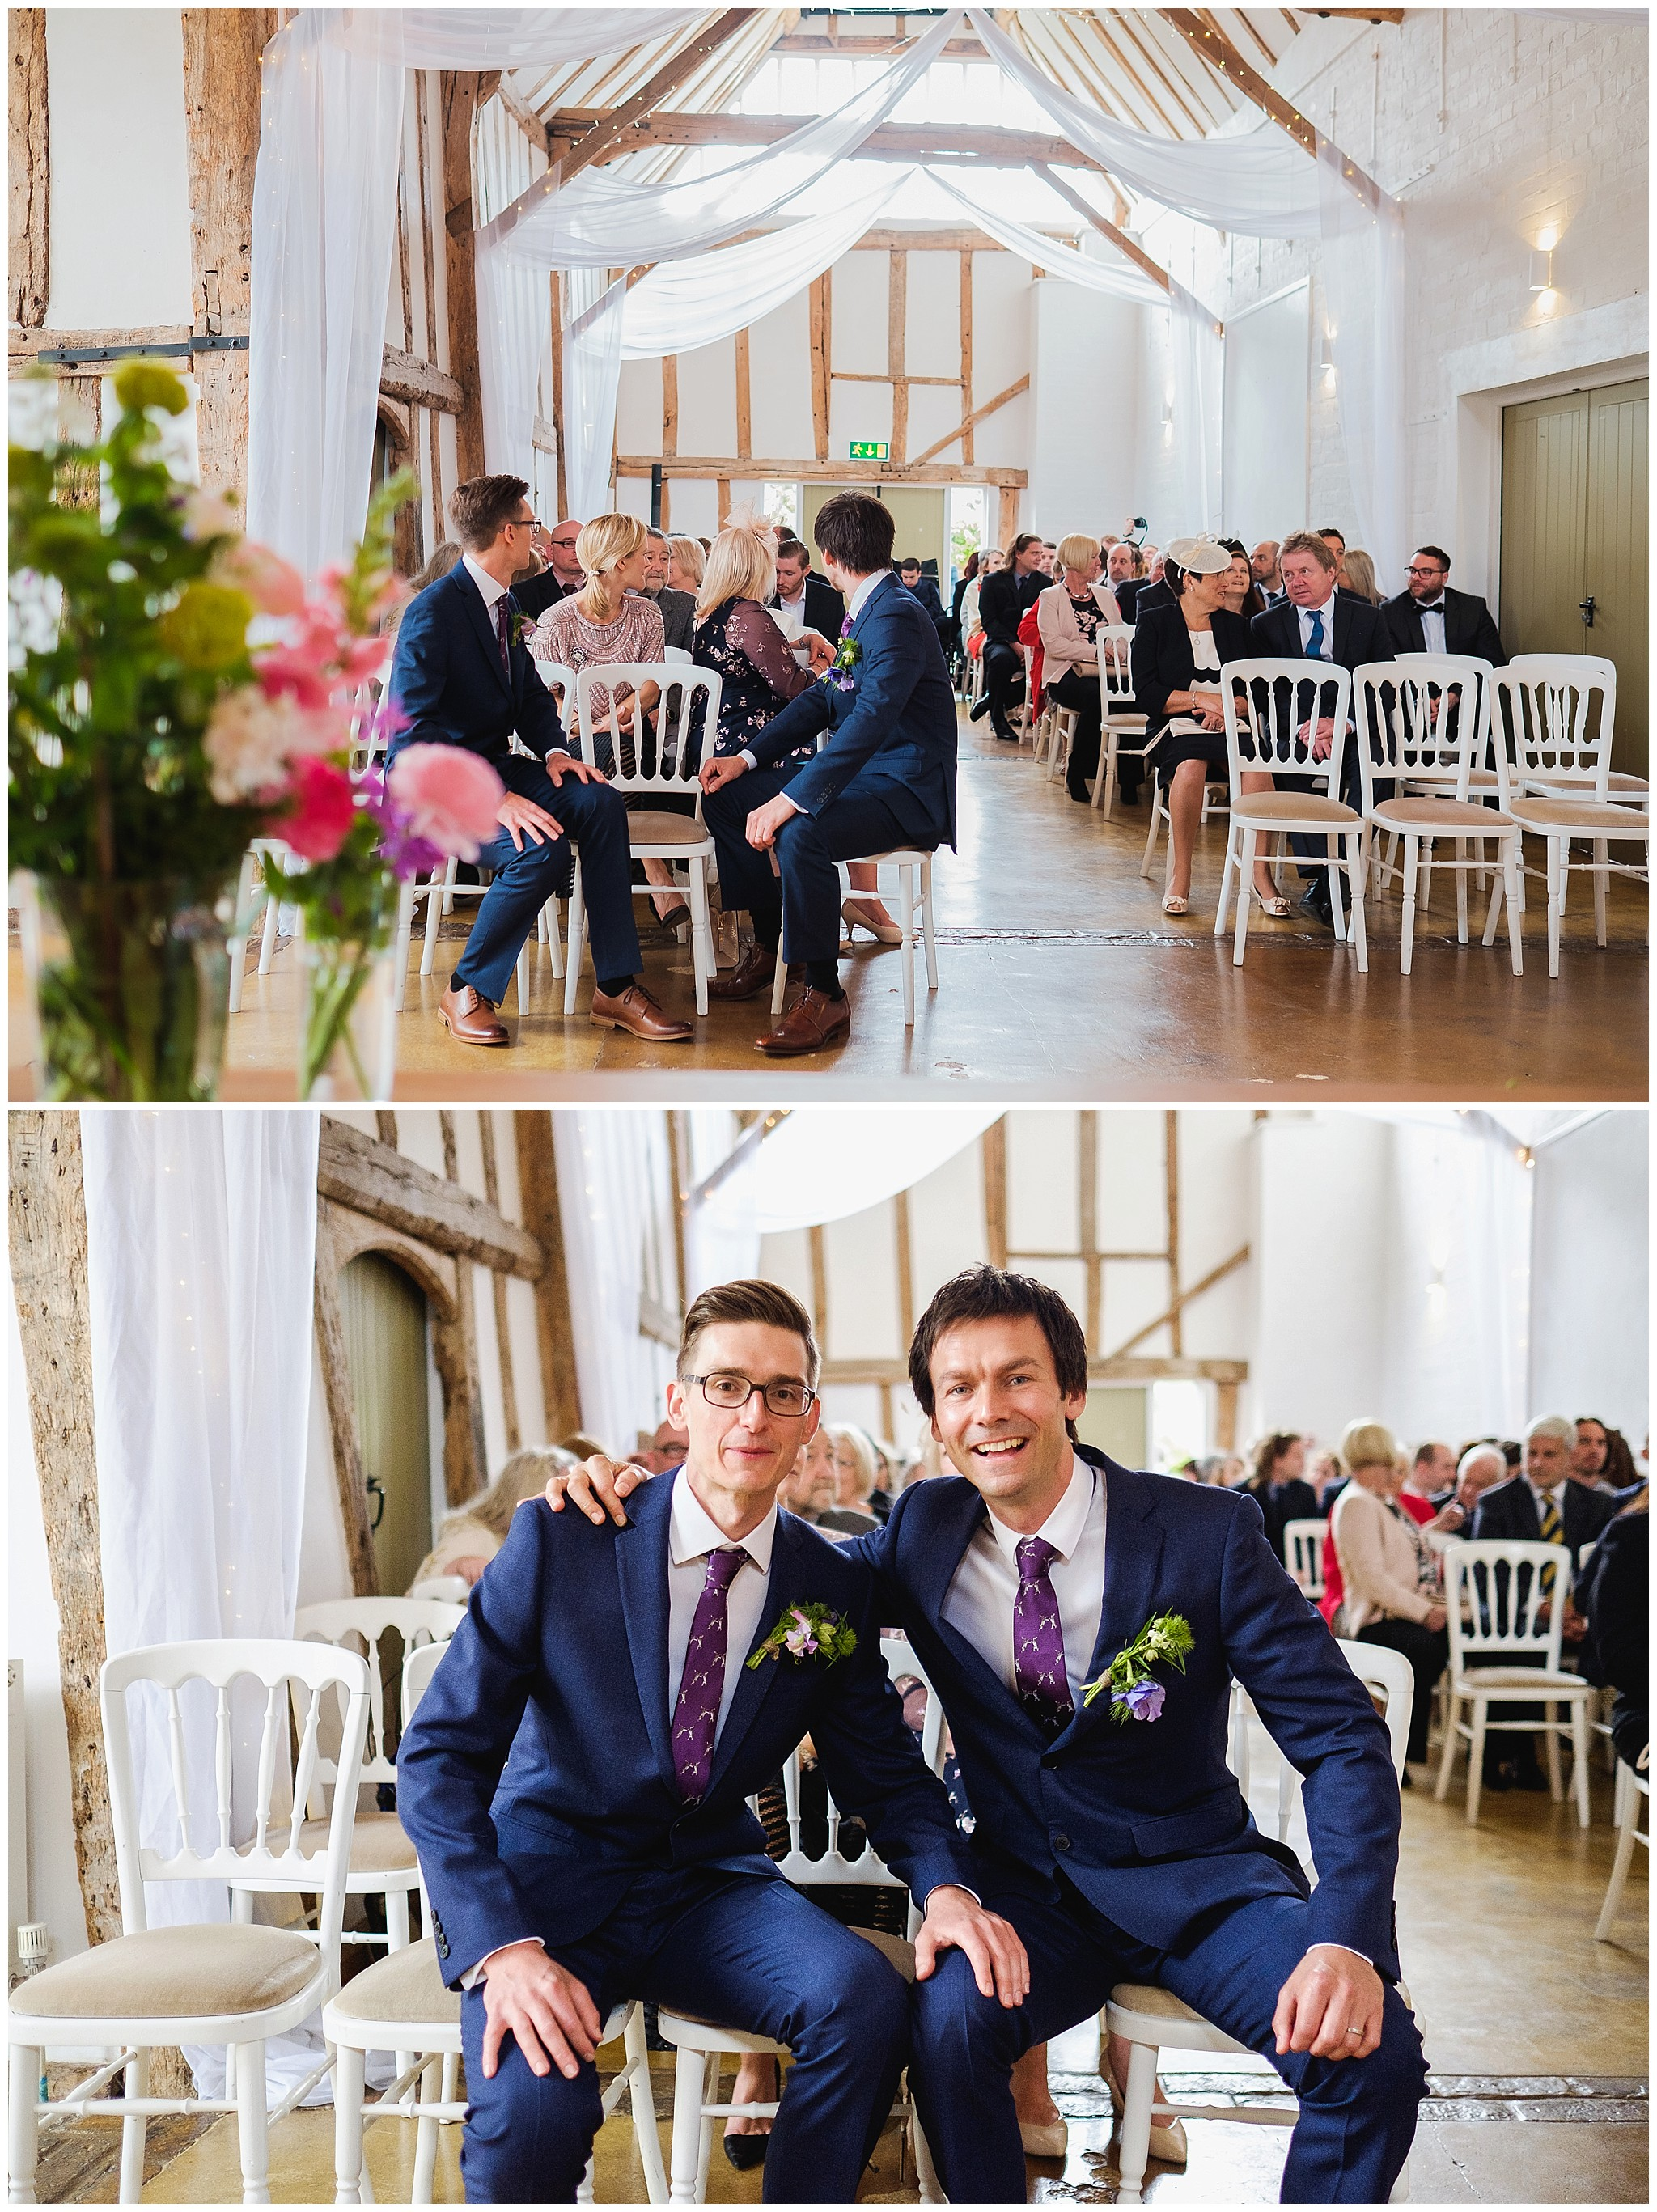 Wedding Barn and Groom waiting with best man